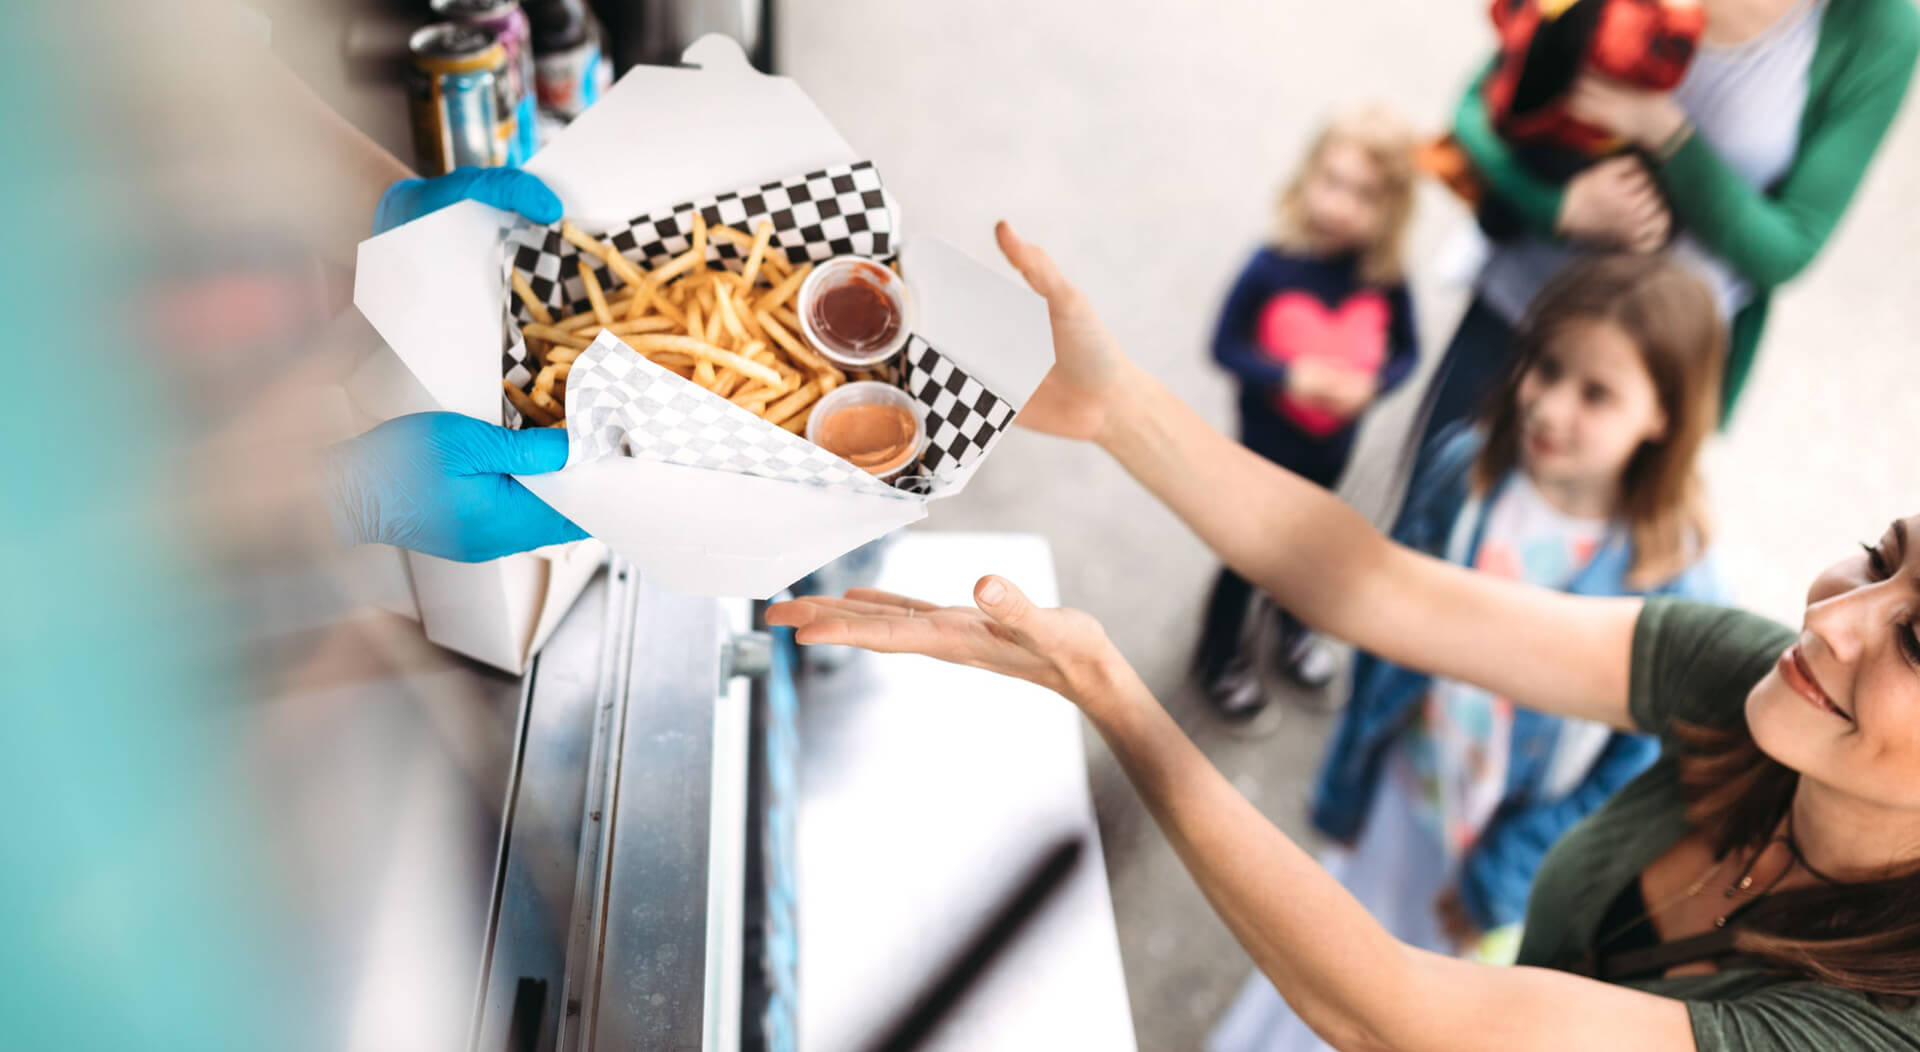 woman smiling as she receives her order of gourmet french fries with special dipping sauce at a food truck